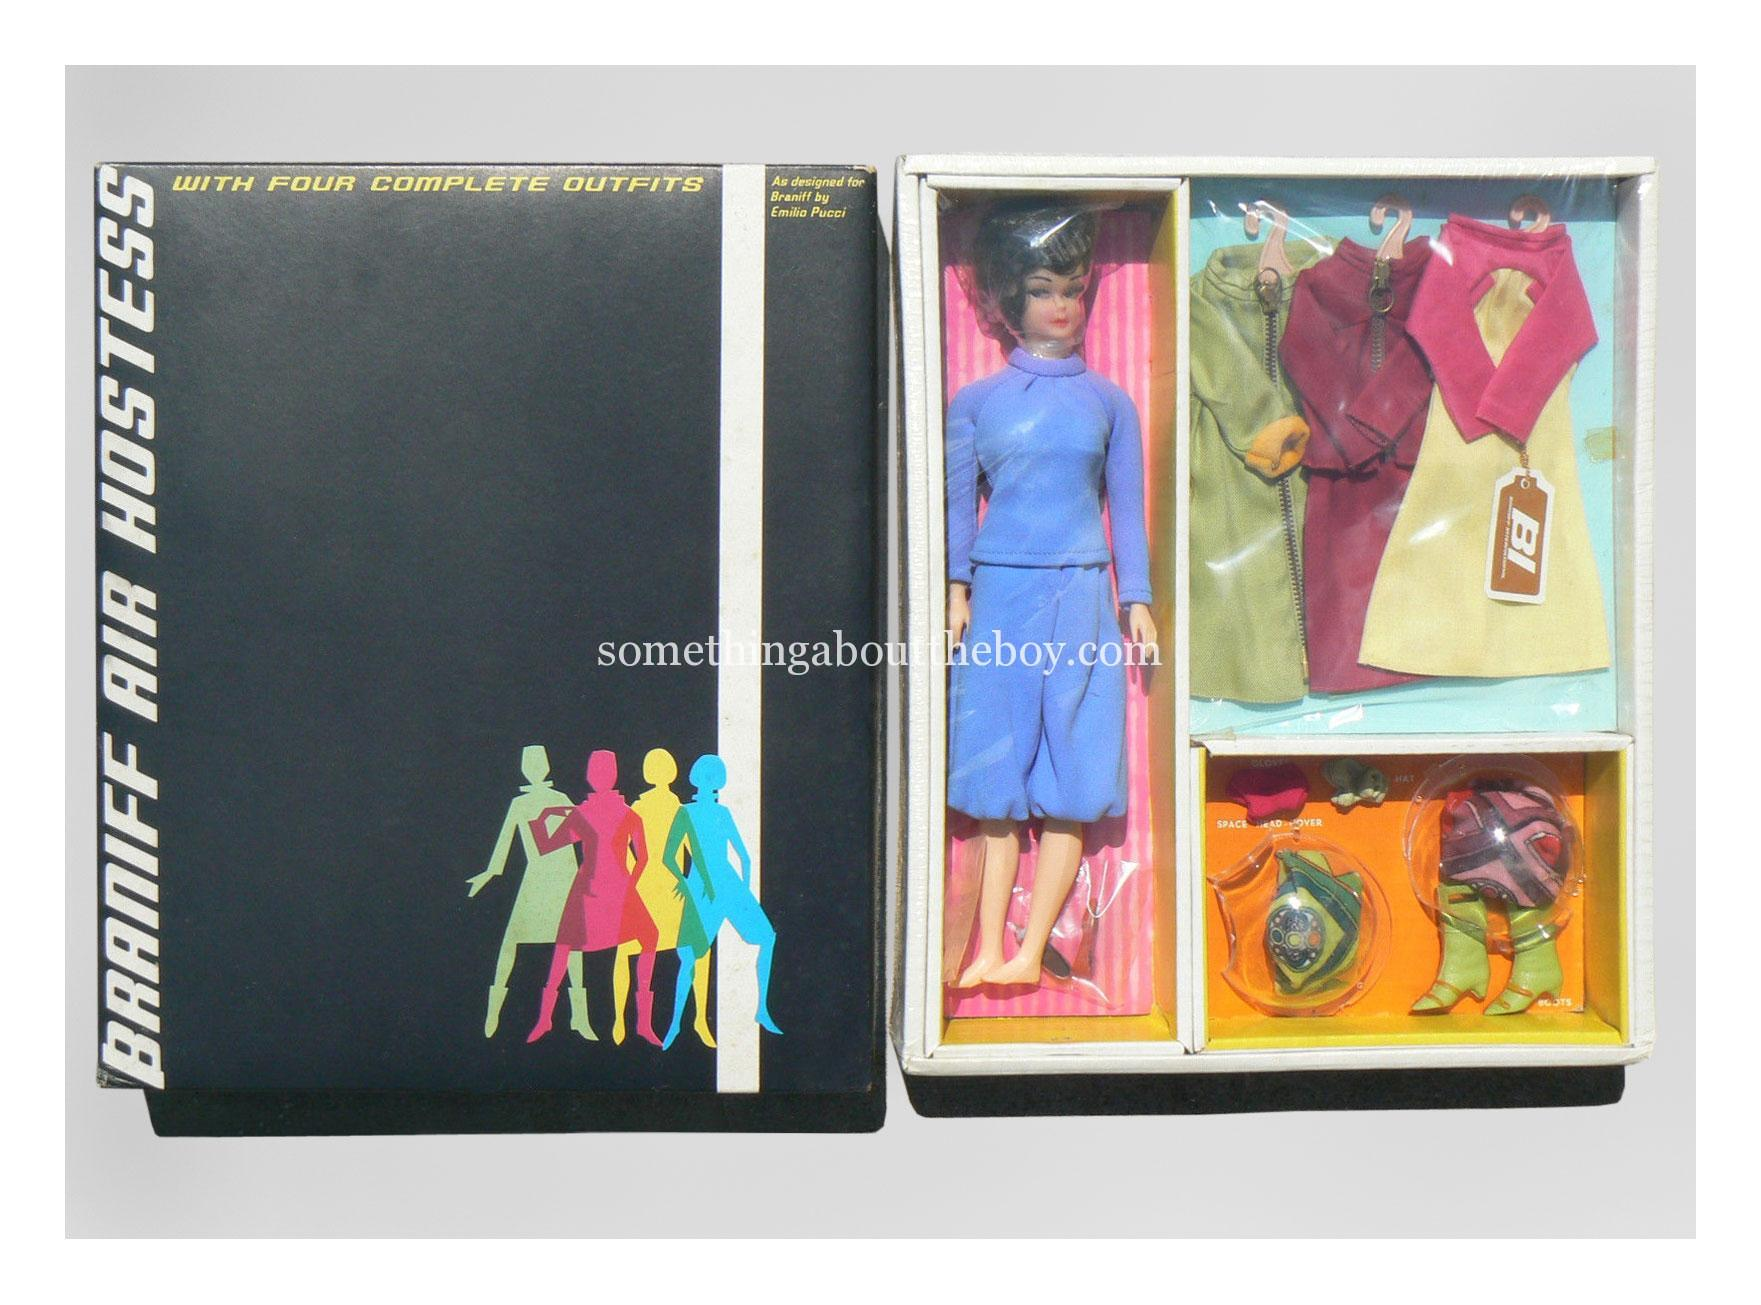 1967 Braniff Air Hostess box set with four complete outfits by Marx Toys